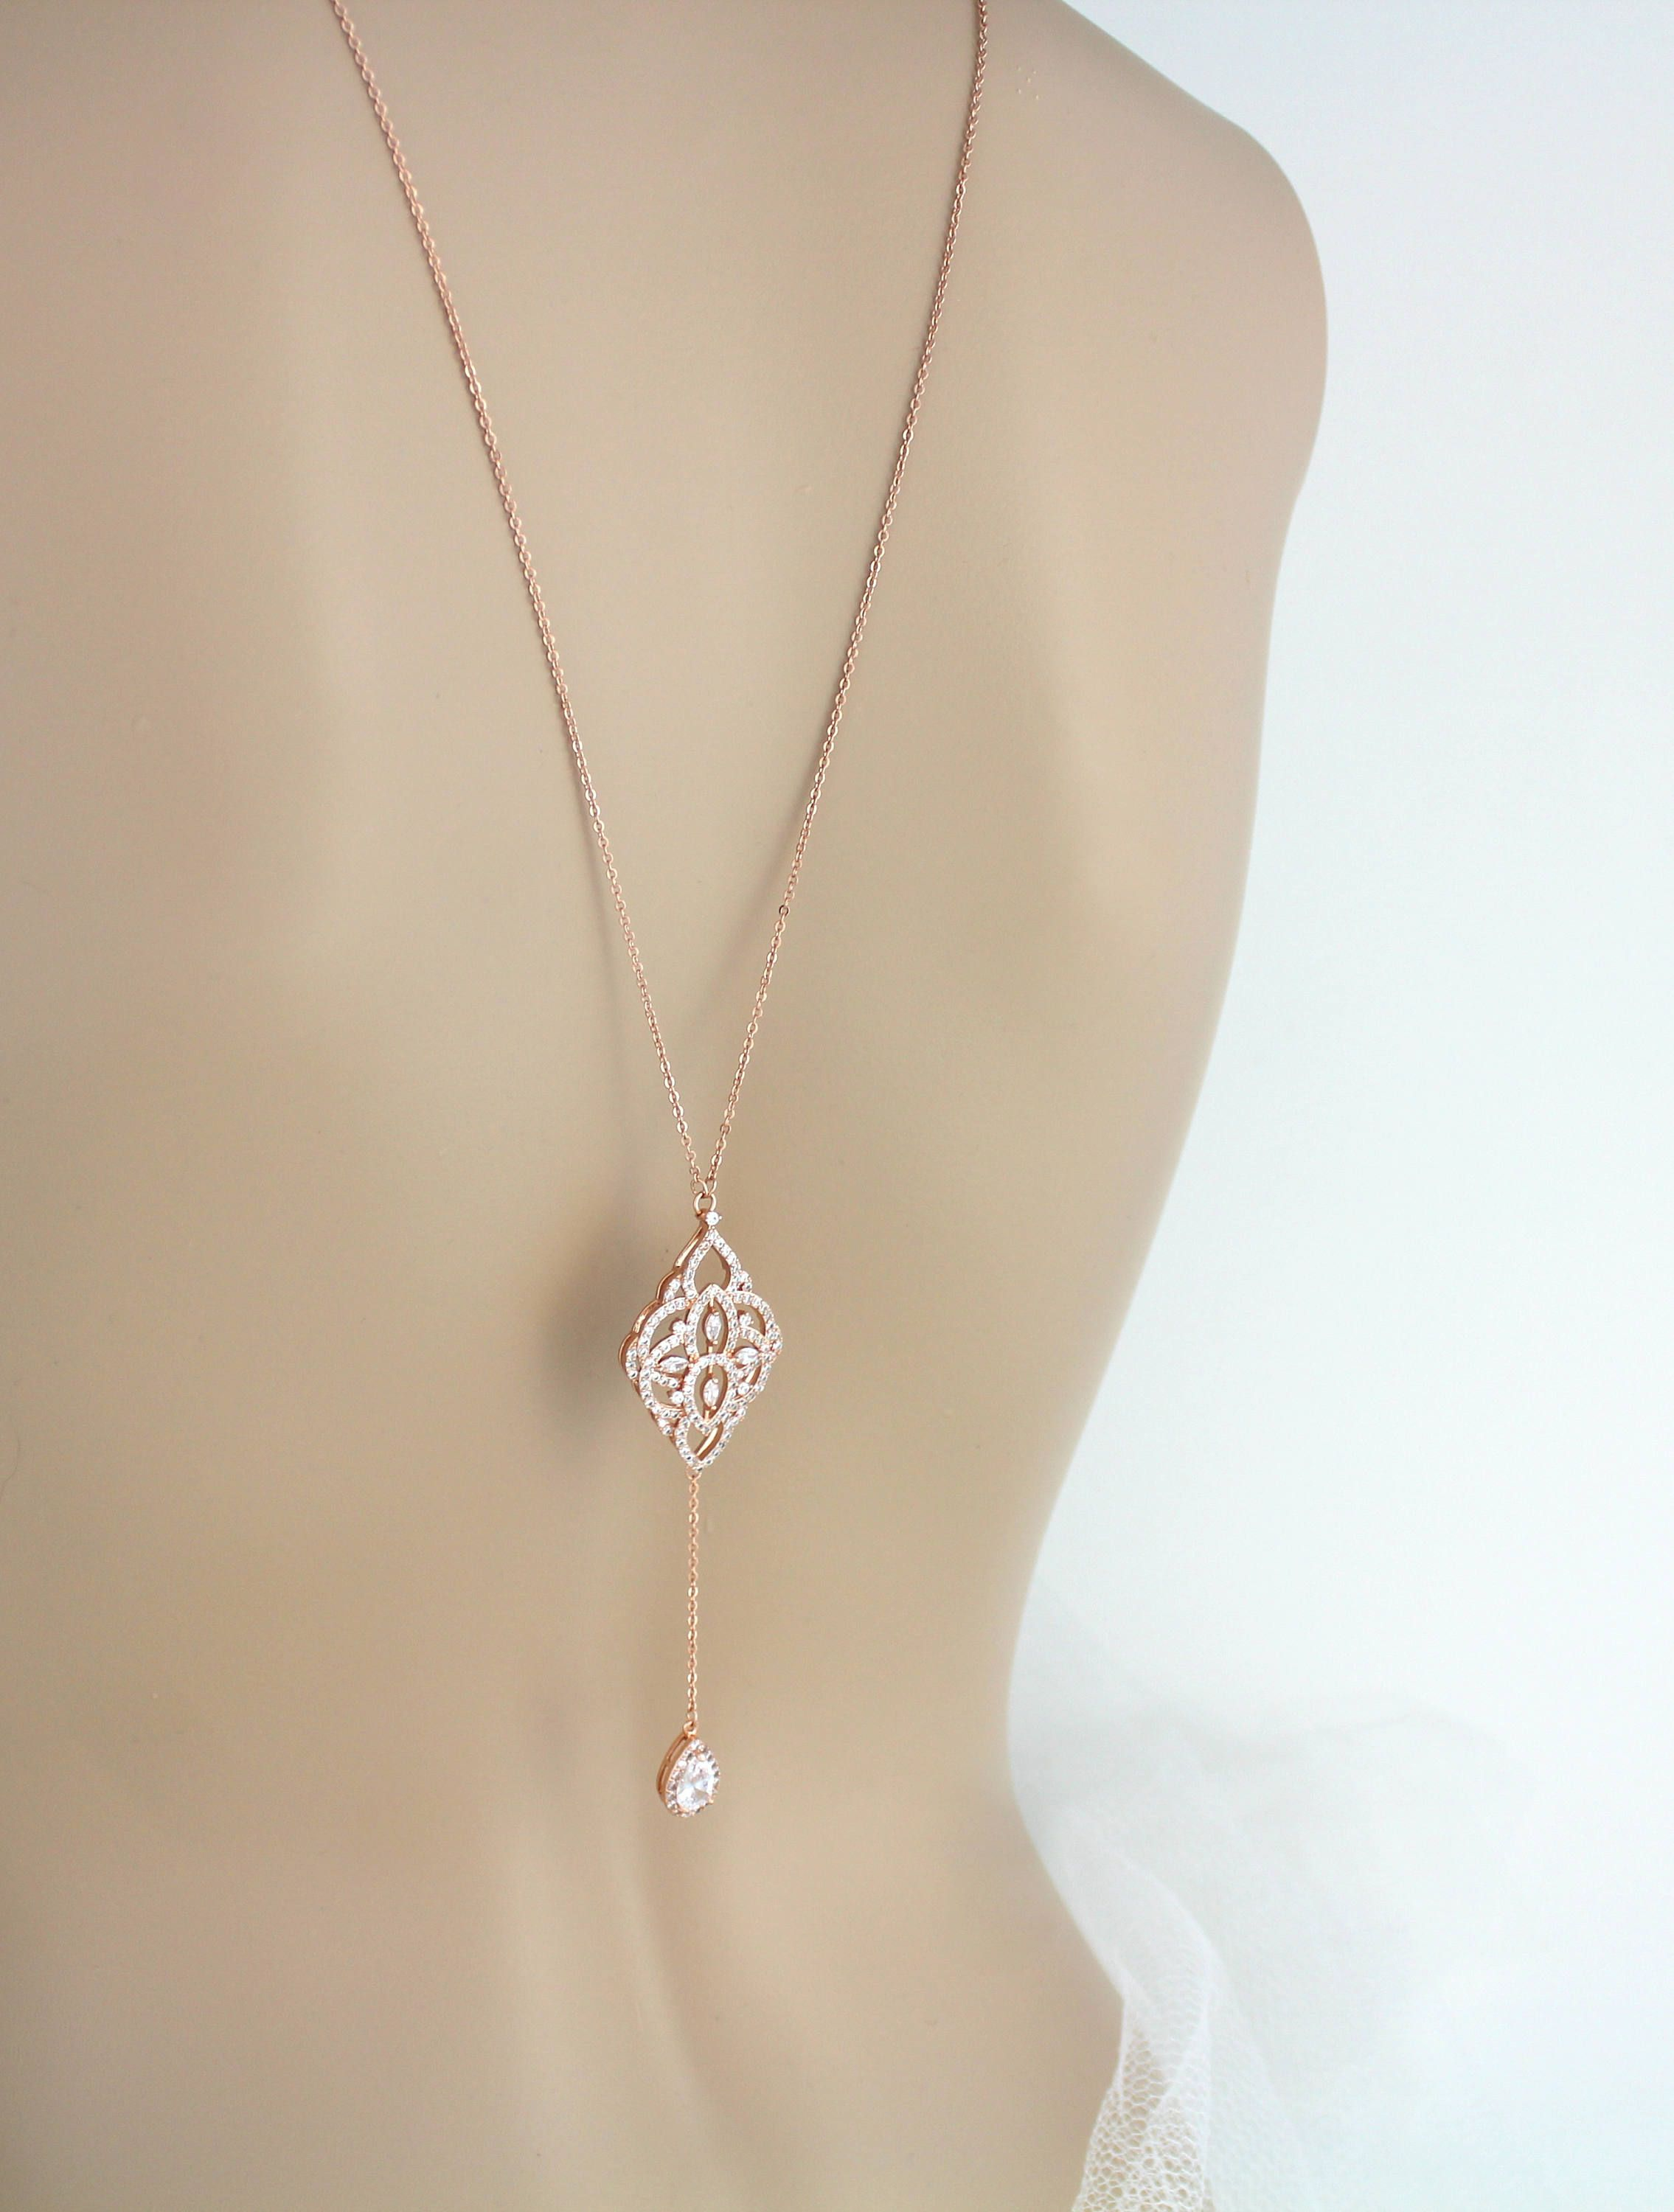 07297243fce9 Rose gold Back necklace Bridal necklace Bridal jewelry Rose gold ...